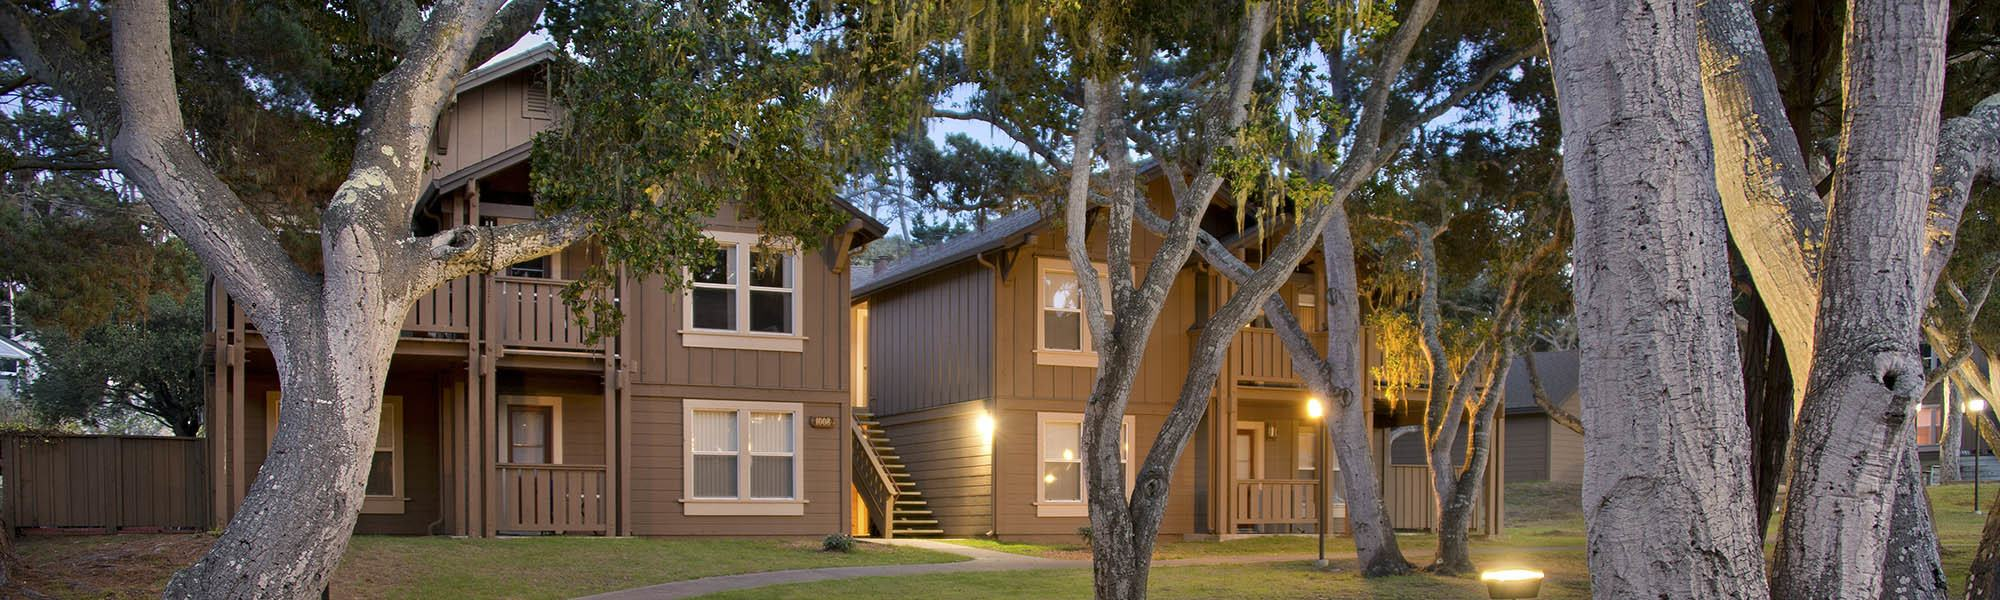 Contact Seventeen Mile Drive Village Apartment Homes on our website